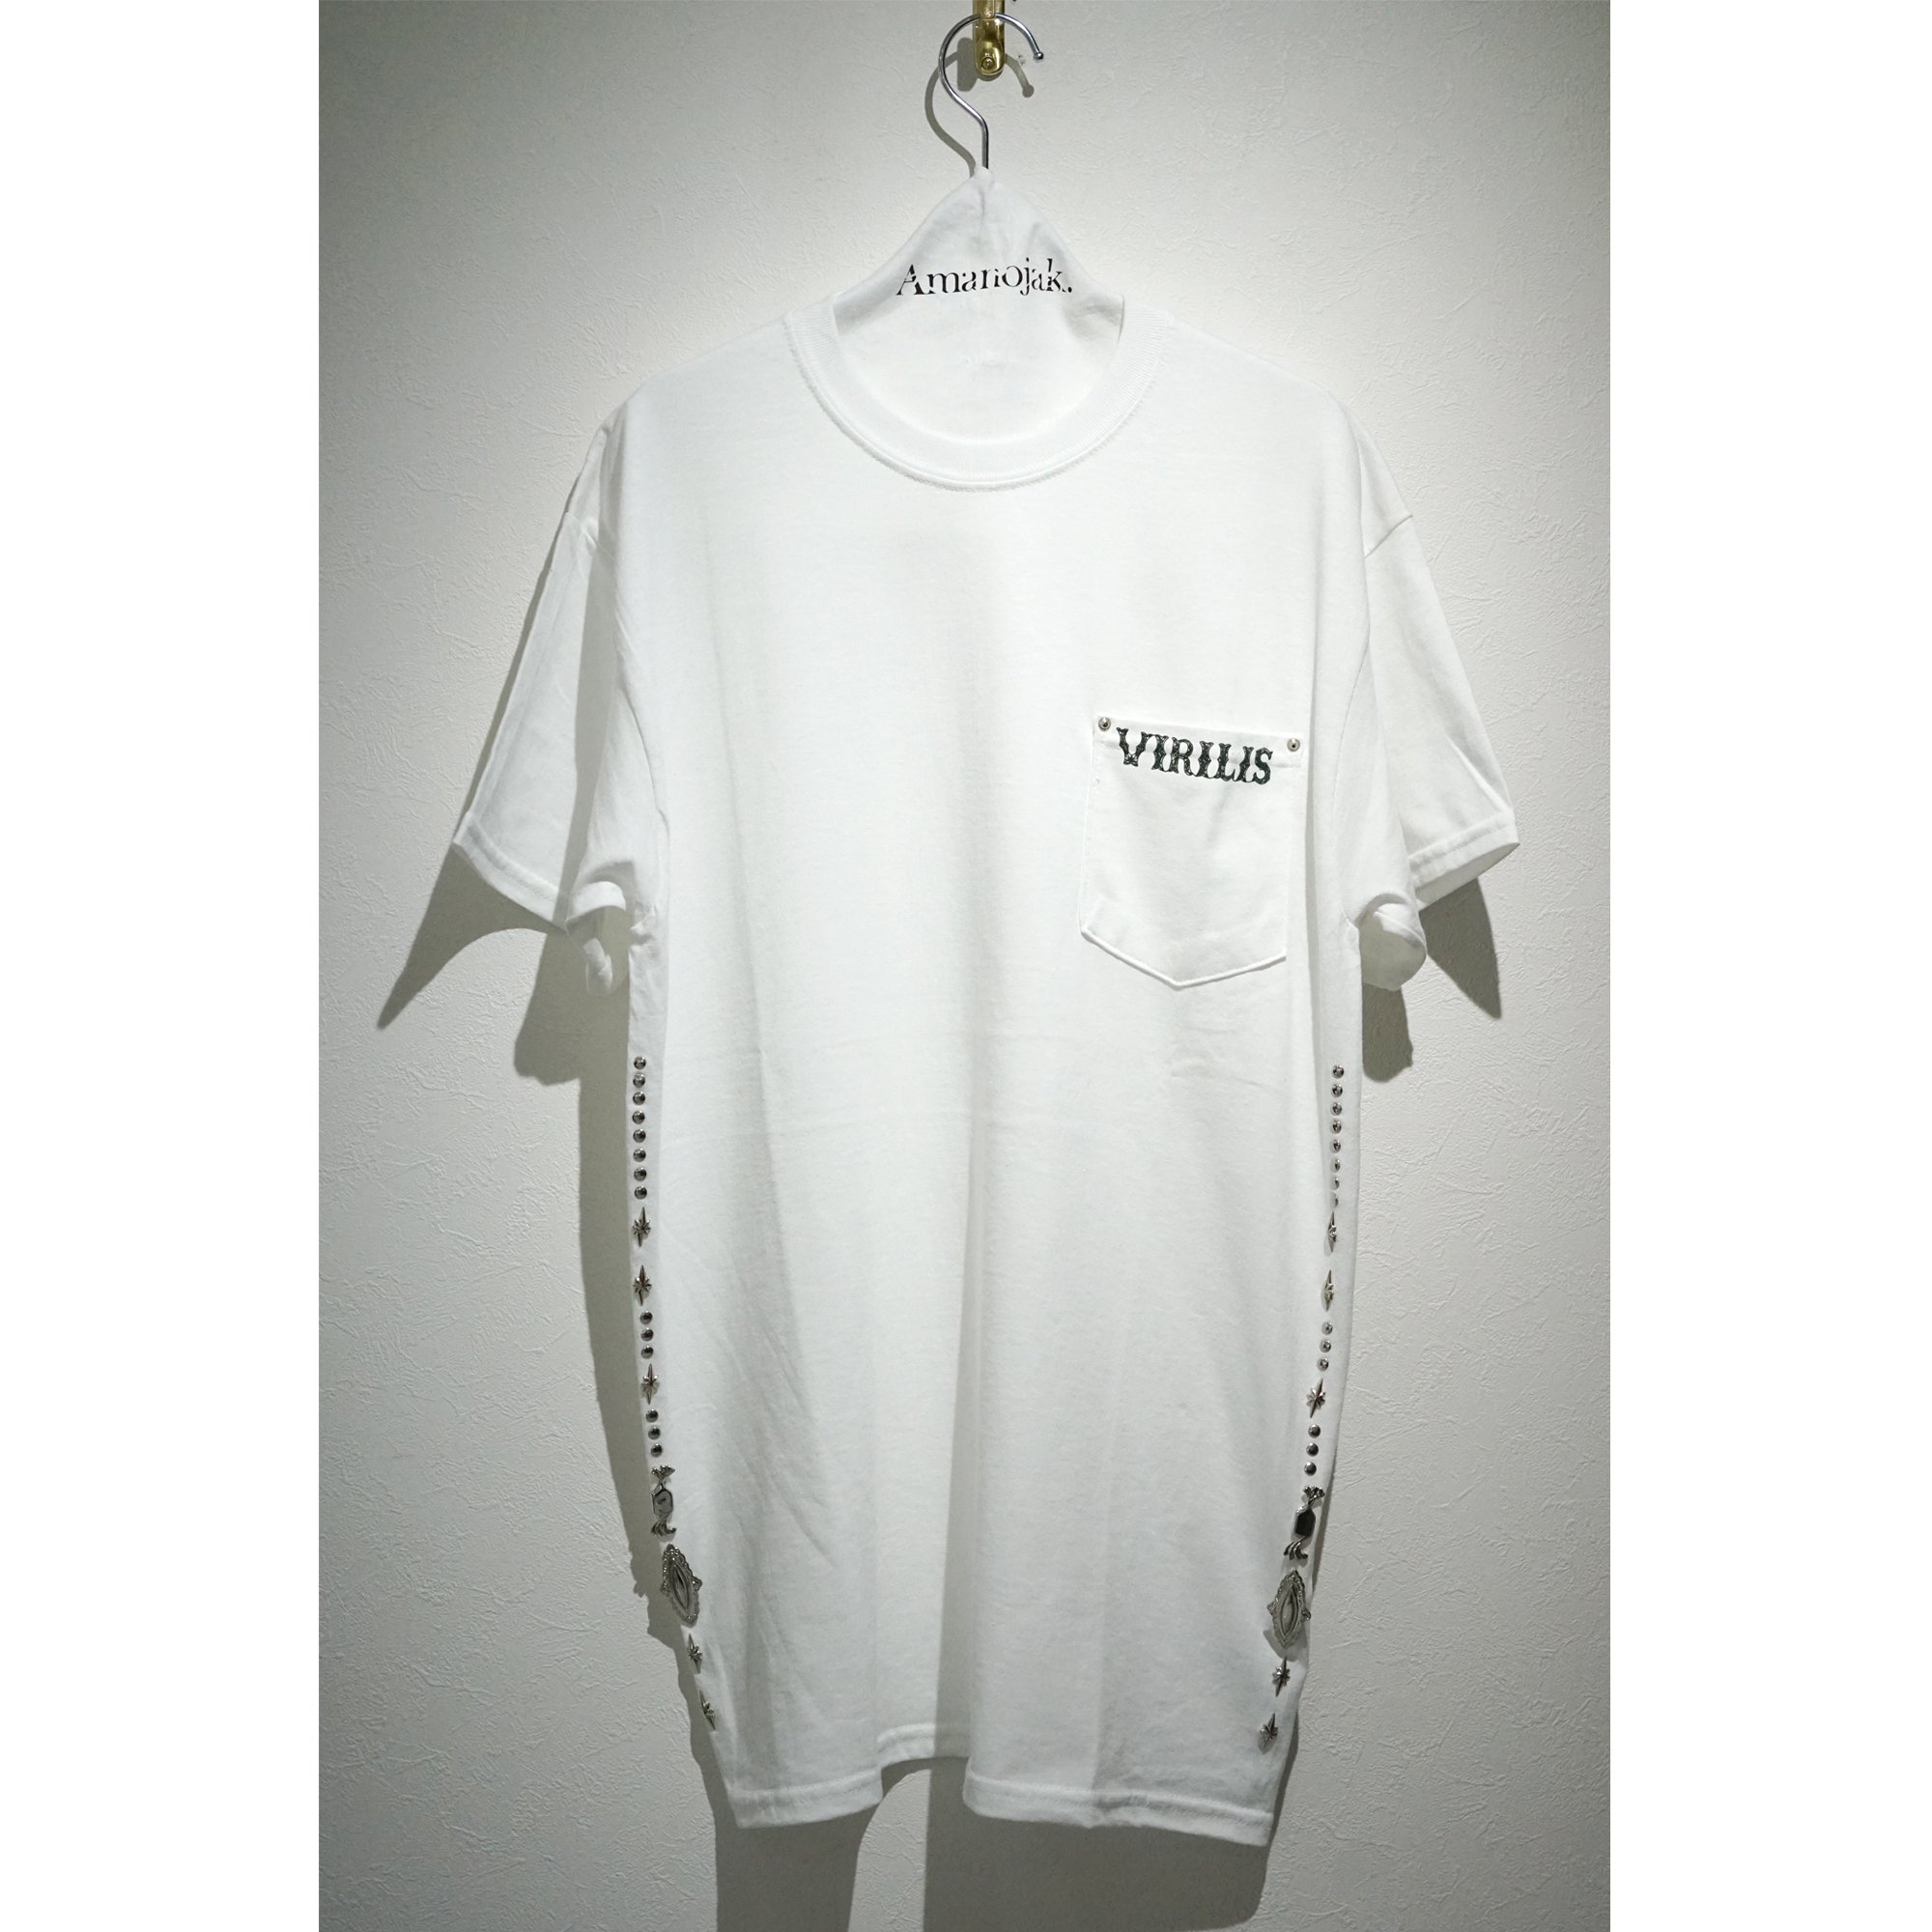 TOGA VIRILLIS STUDS POCKET T-SHIRTS WHITE